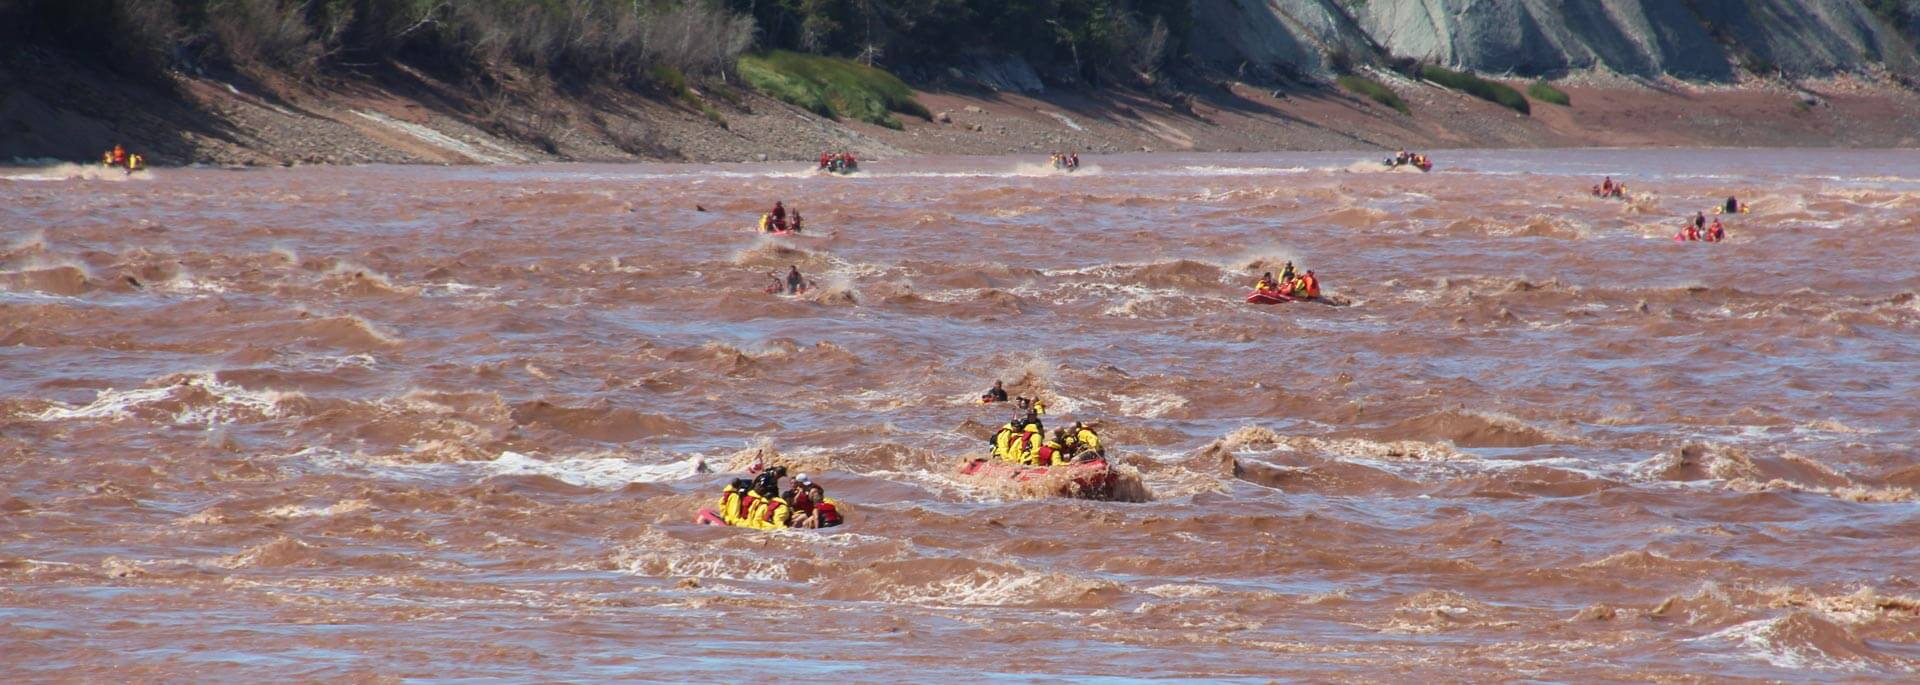 Fotos: Tidal Bore Rafting in Nova Scotia